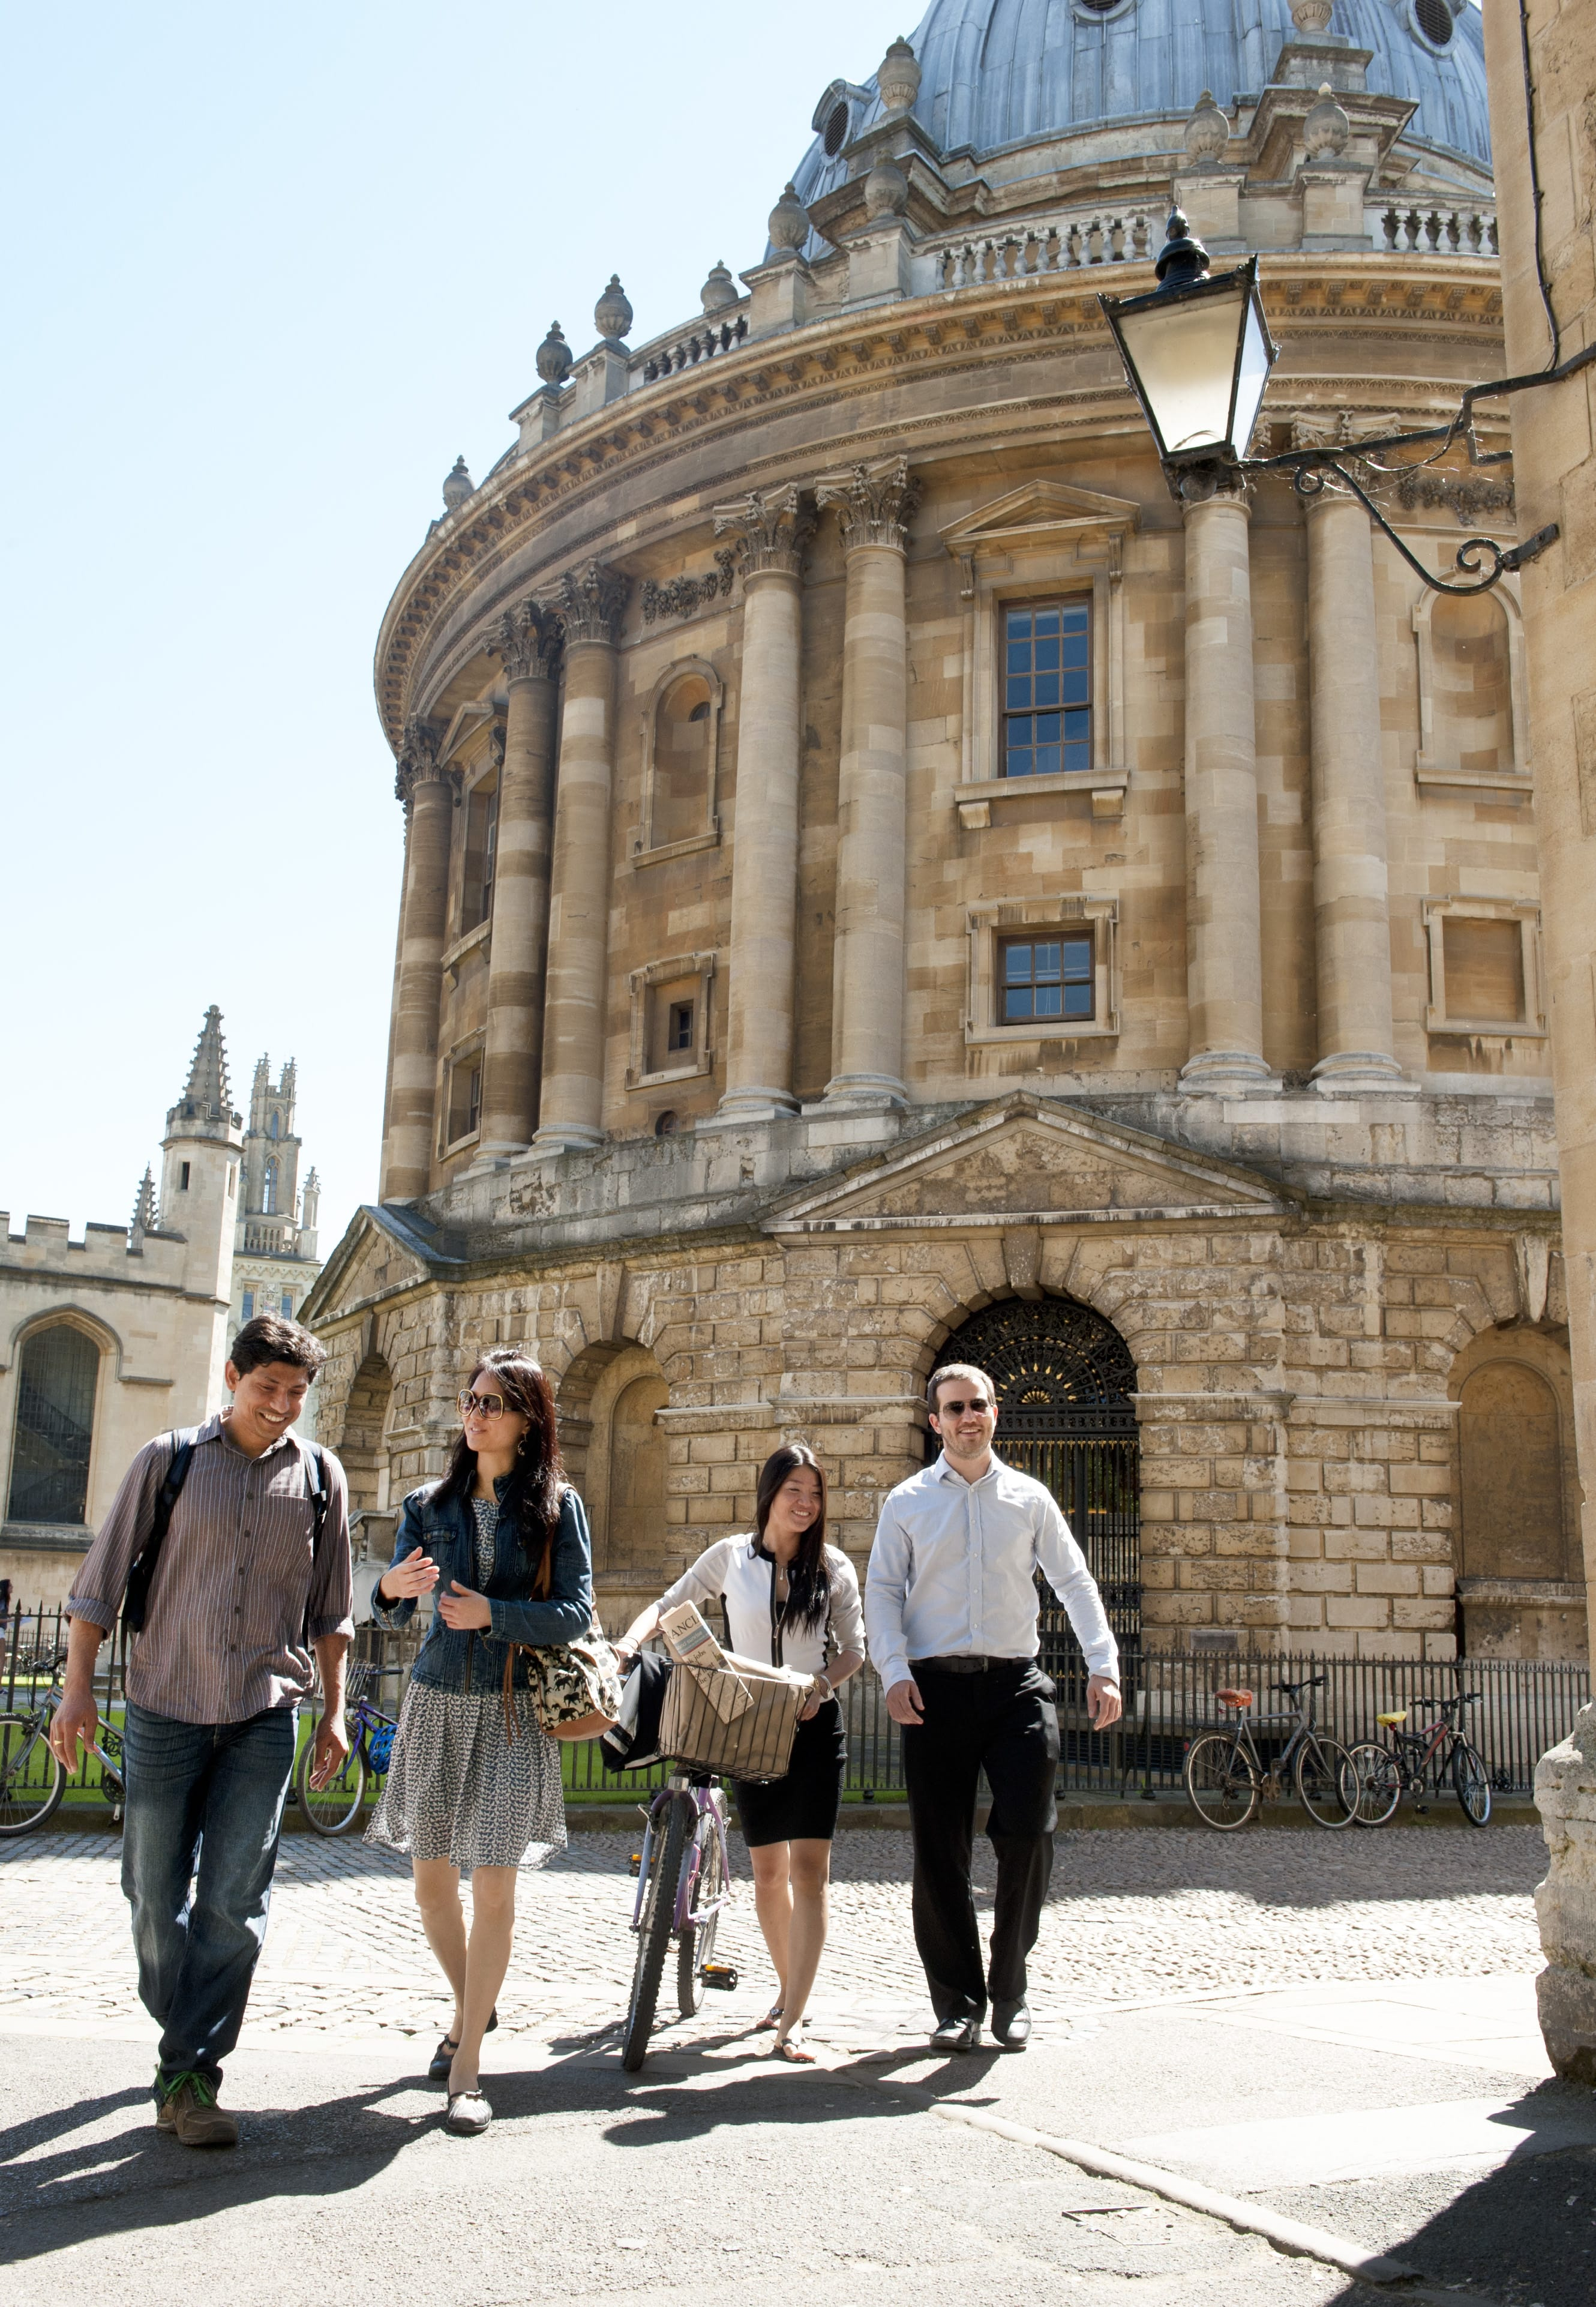 Students and Radcliffe Camera